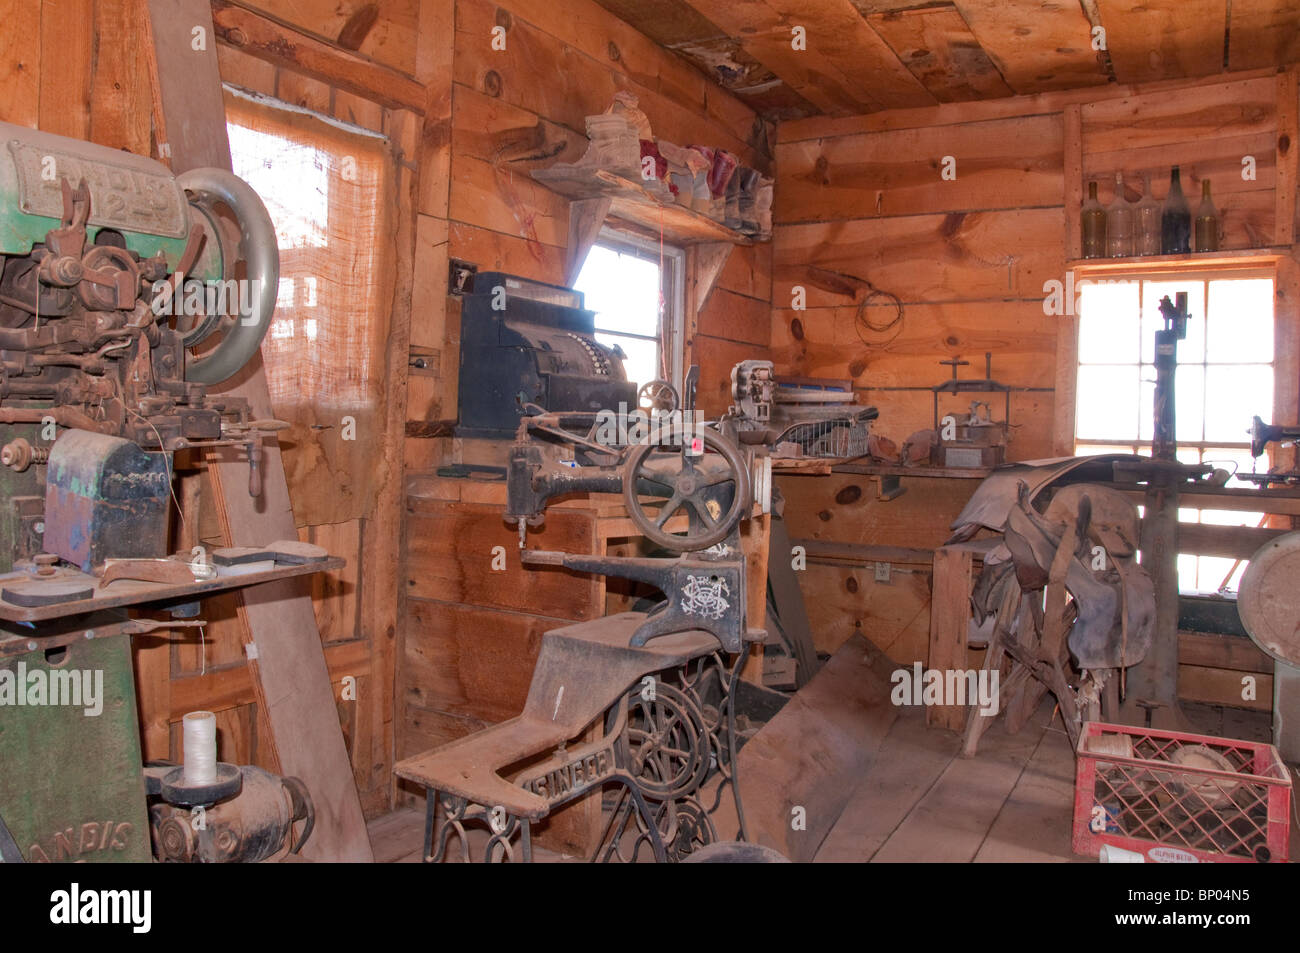 Old Workshop for Cooper Mining Jerome Arizona Stock Photo